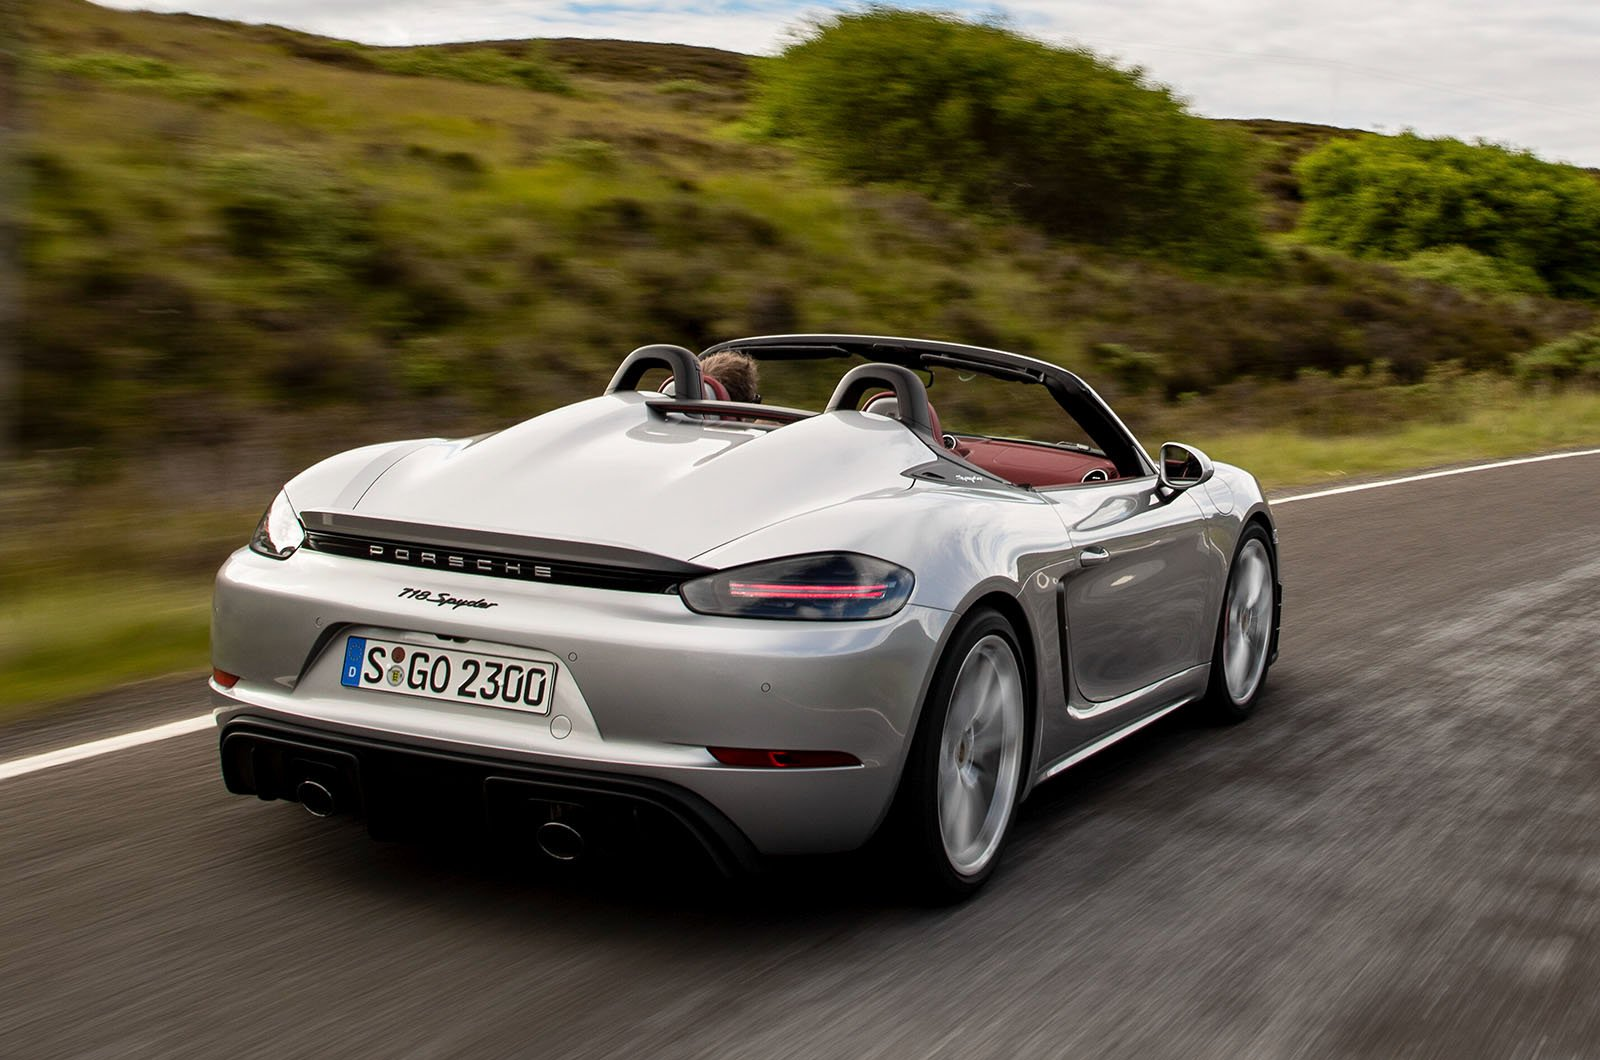 2019 718 Boxster Spyder rear cornering shot